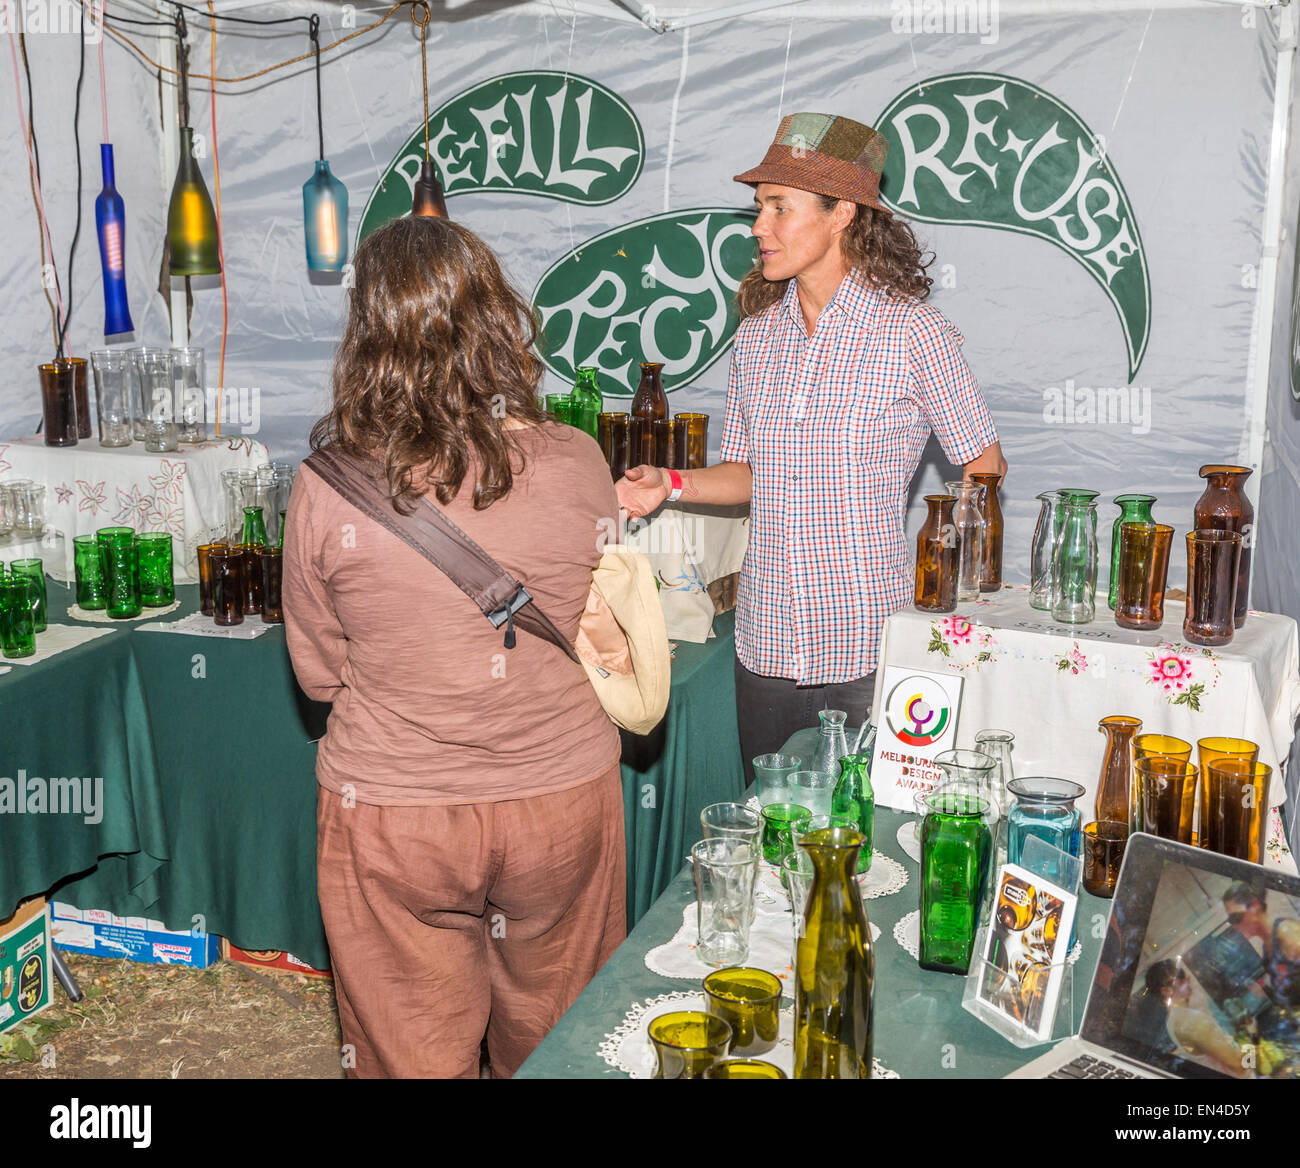 Refill, Reuse and Recycle demonstration at the Lost Crafts Fair, Kyneton, Vic Australia - Stock Image